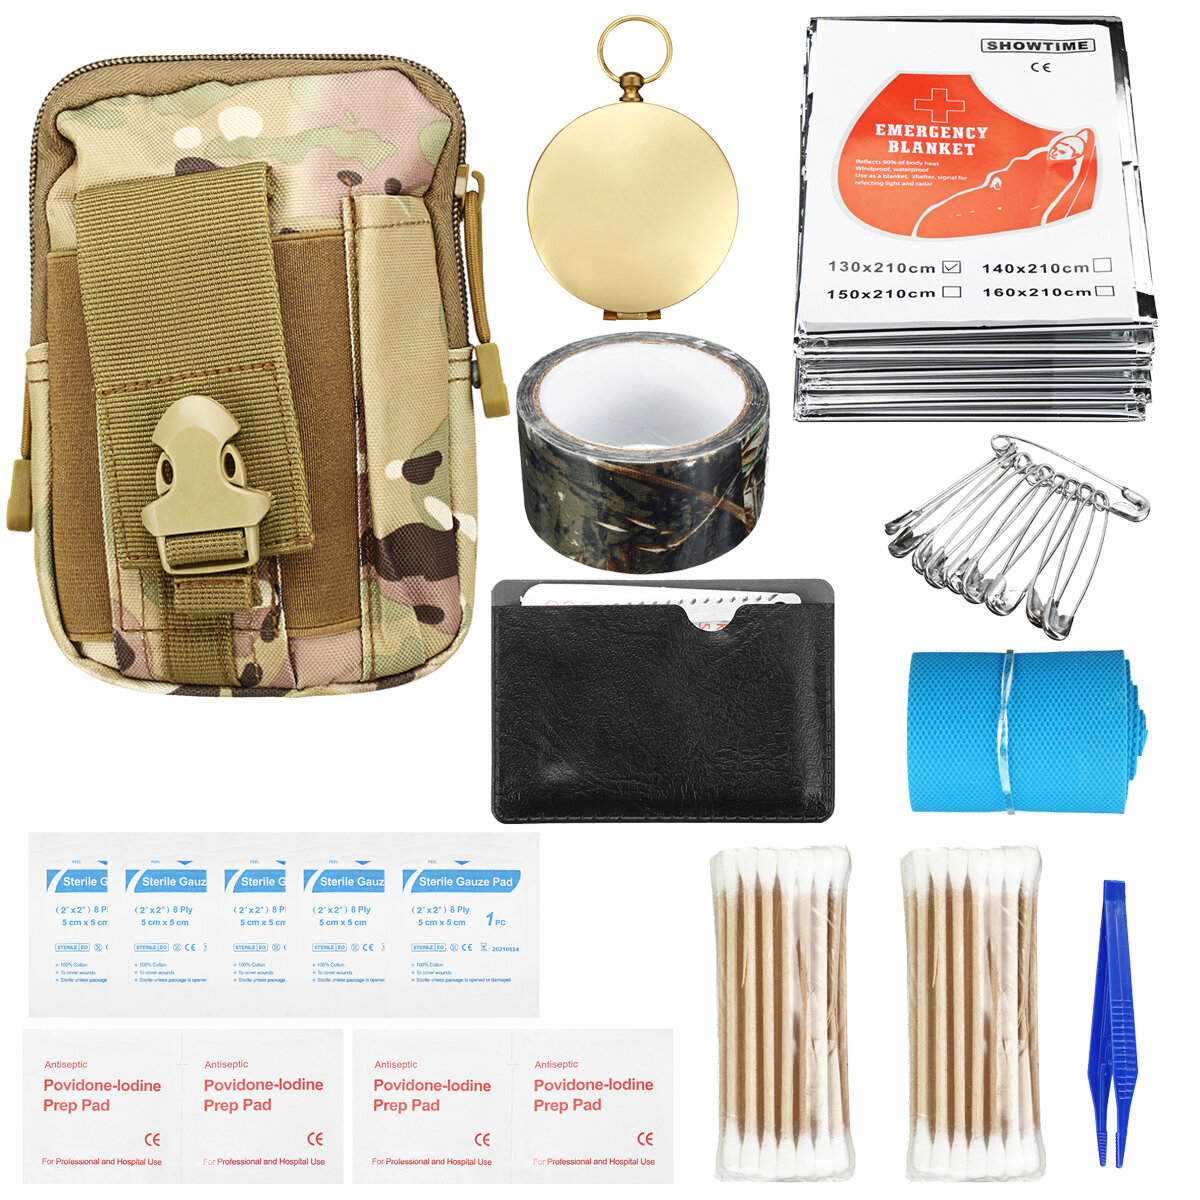 Portable Survival Kit Self-help Sos Equipment Edc For Car First Aid Bag Camping Outdoor Emergency Bag Travel & Roadway Product